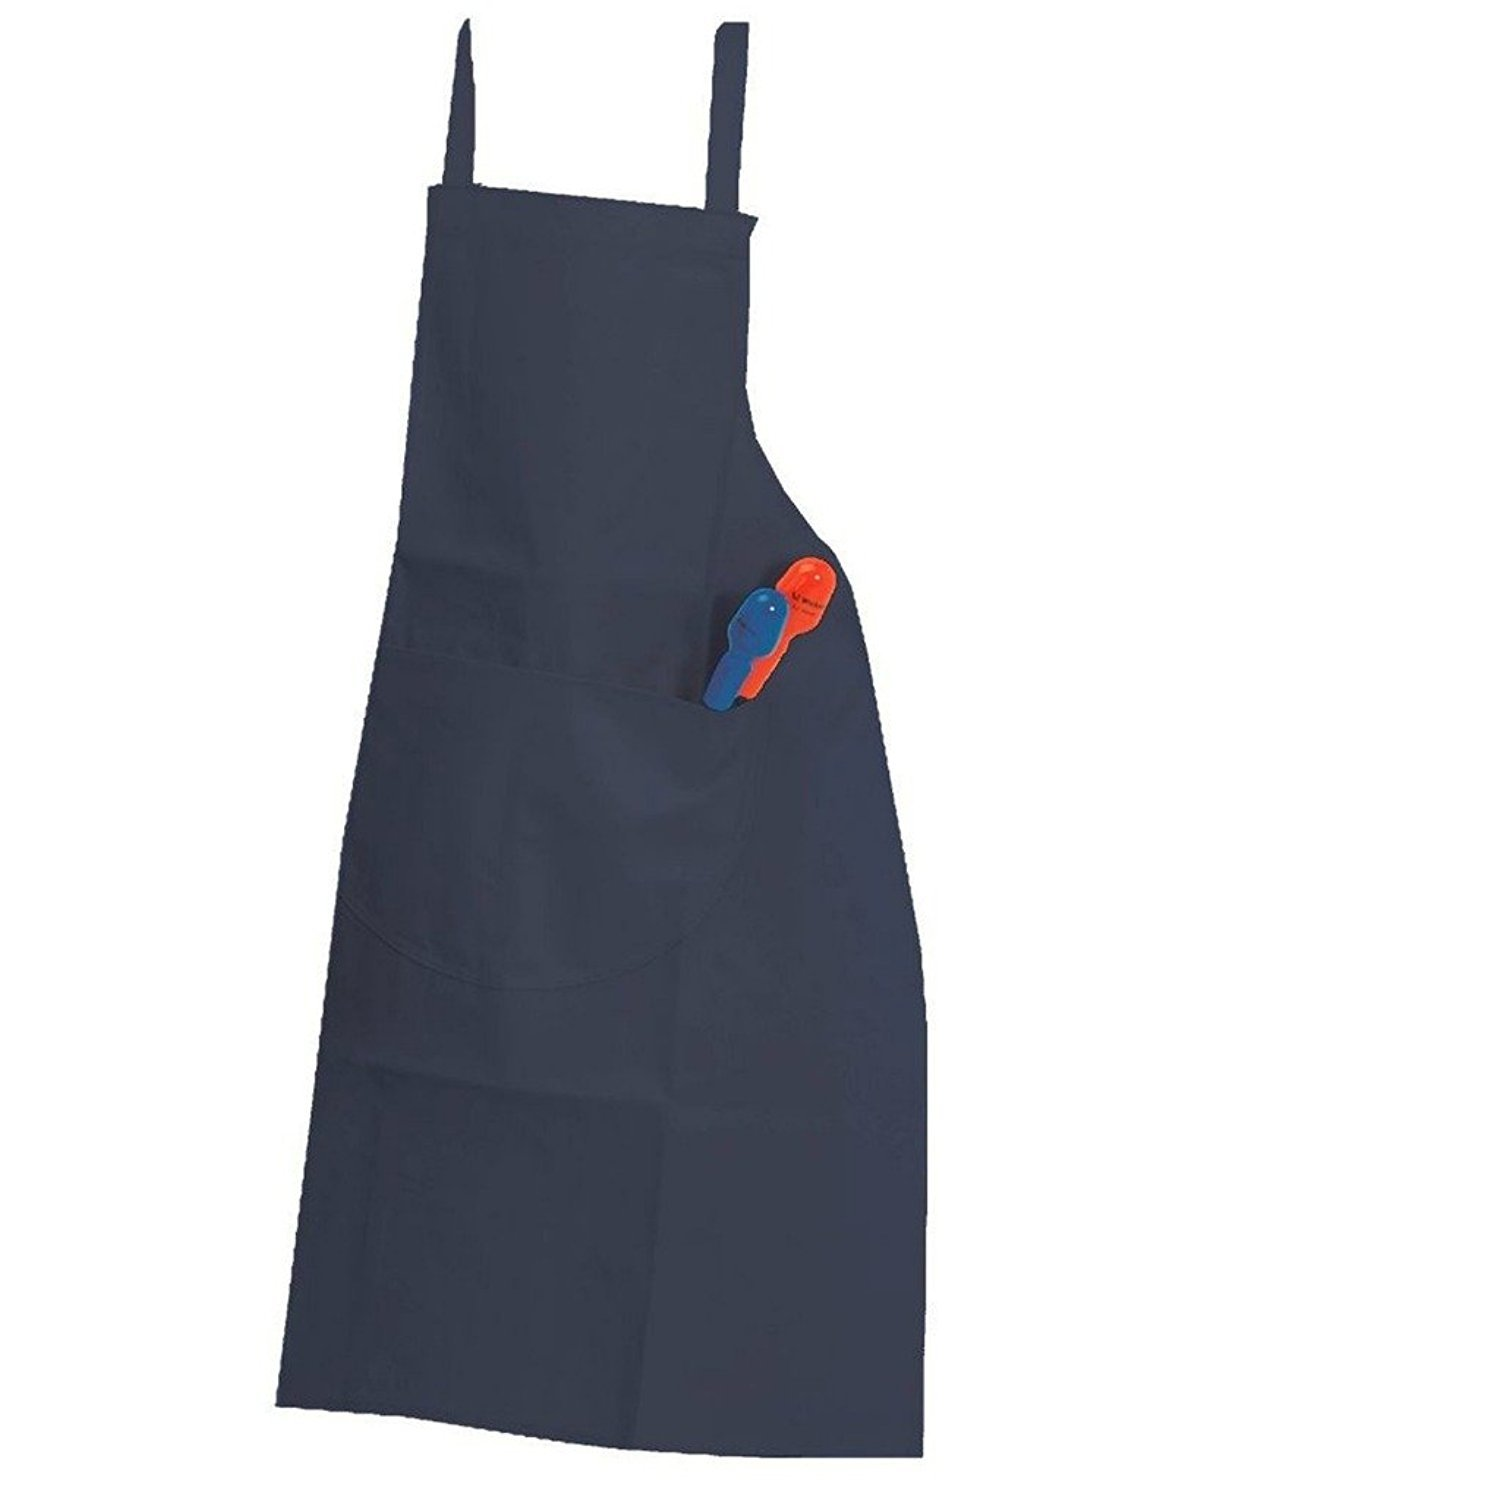 Childrens Hardwearing Protective Apron Painting, Cooking or Crafting - Unicol